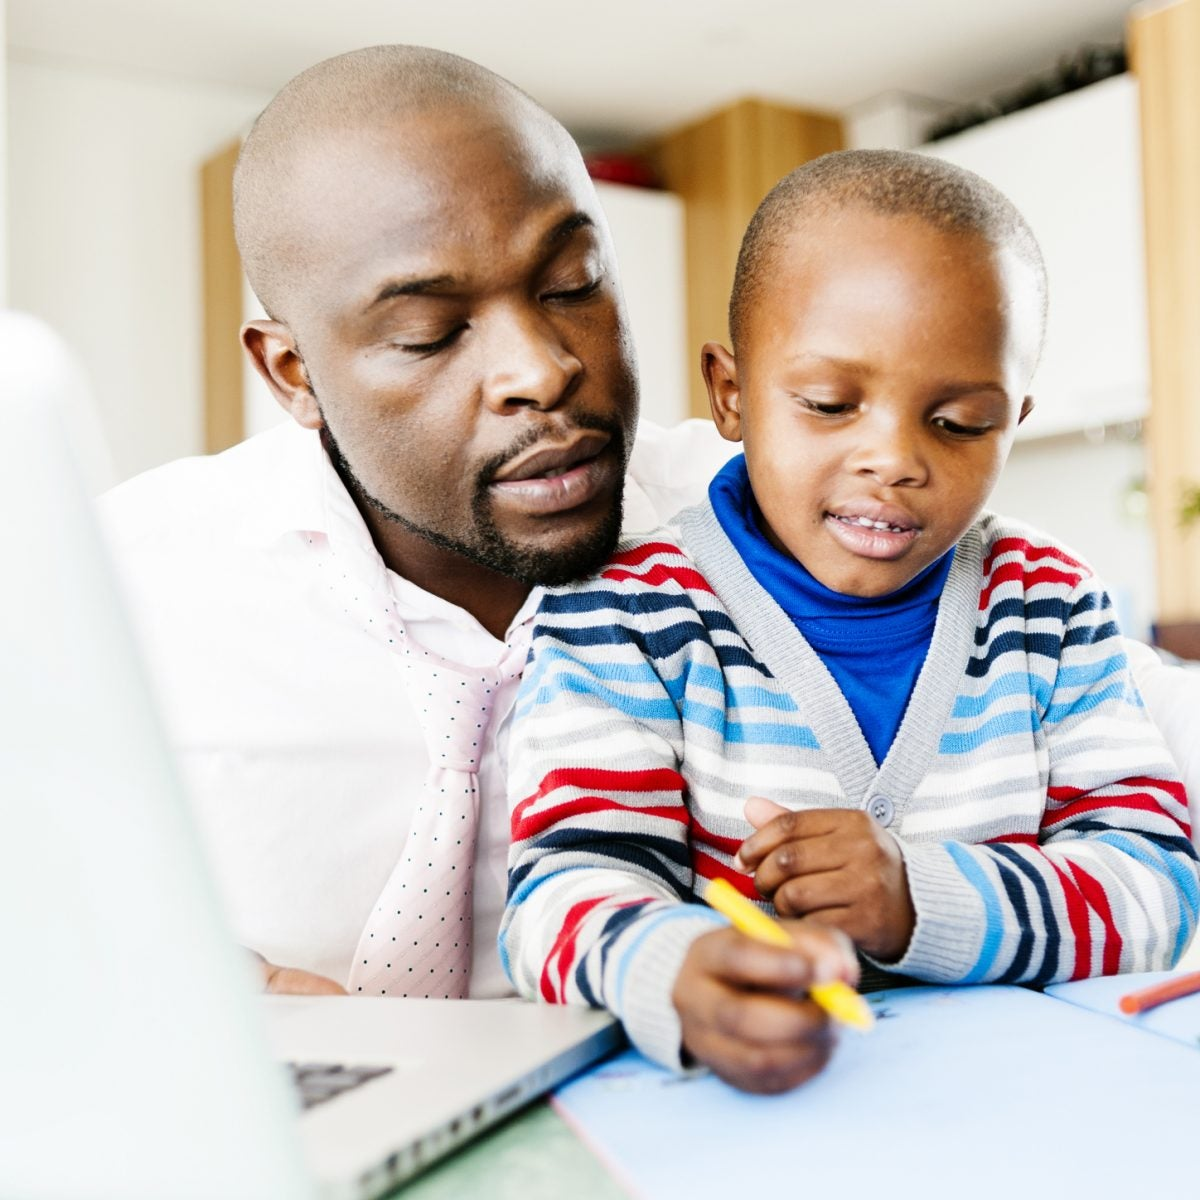 COVID-19 Homeschooling Could Be Transformative For Black Children